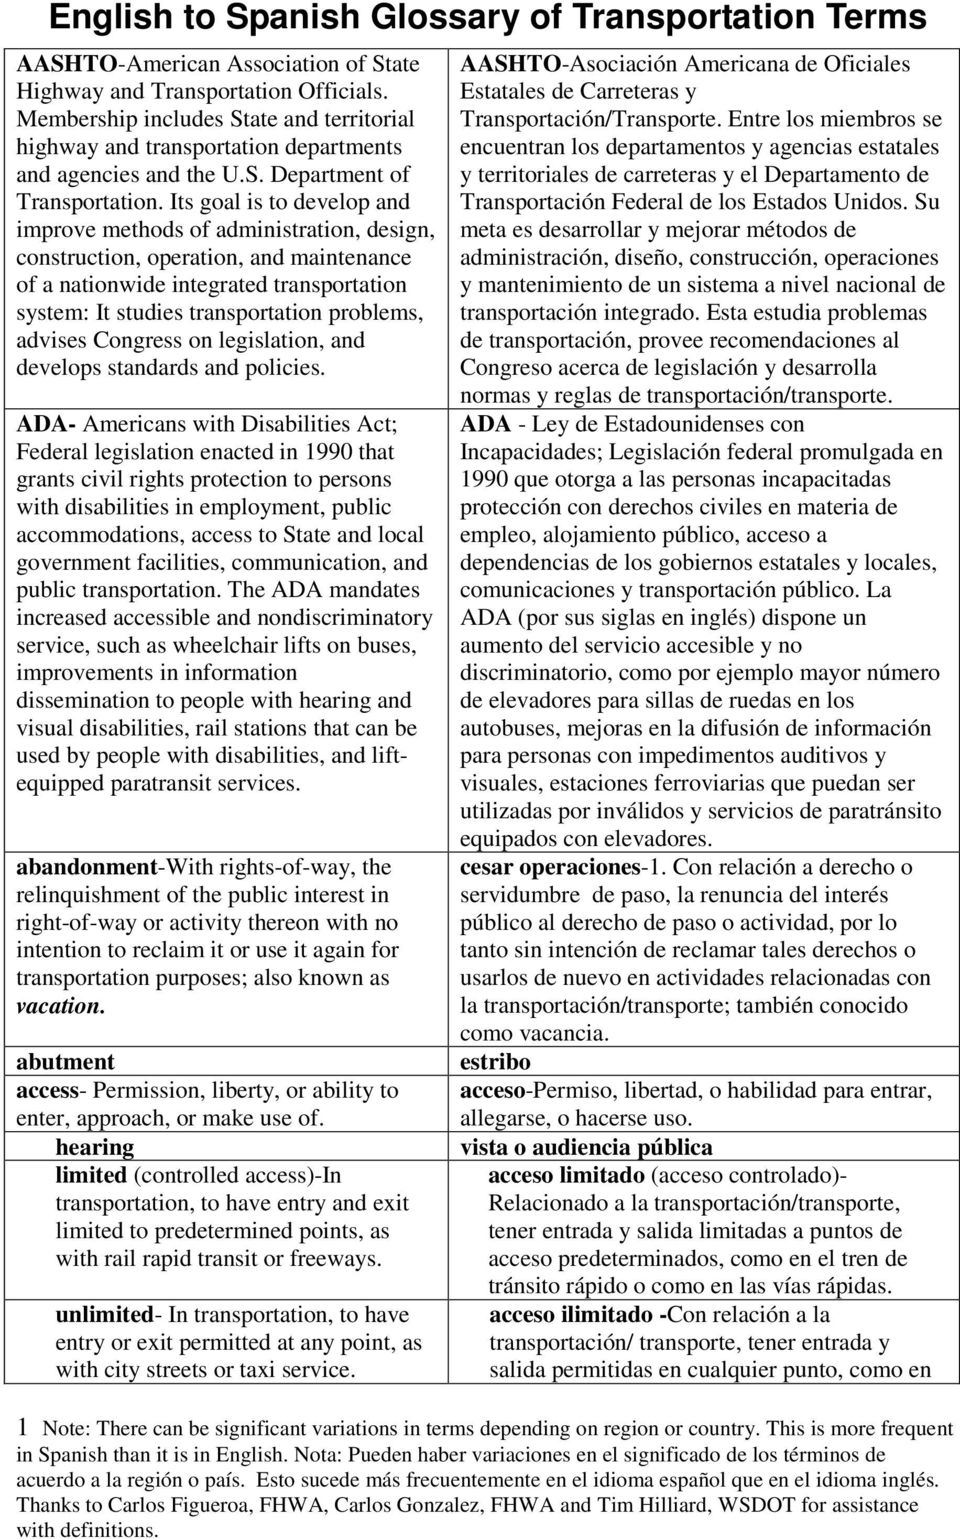 advises Congress on legislation, and develops standards and policies.